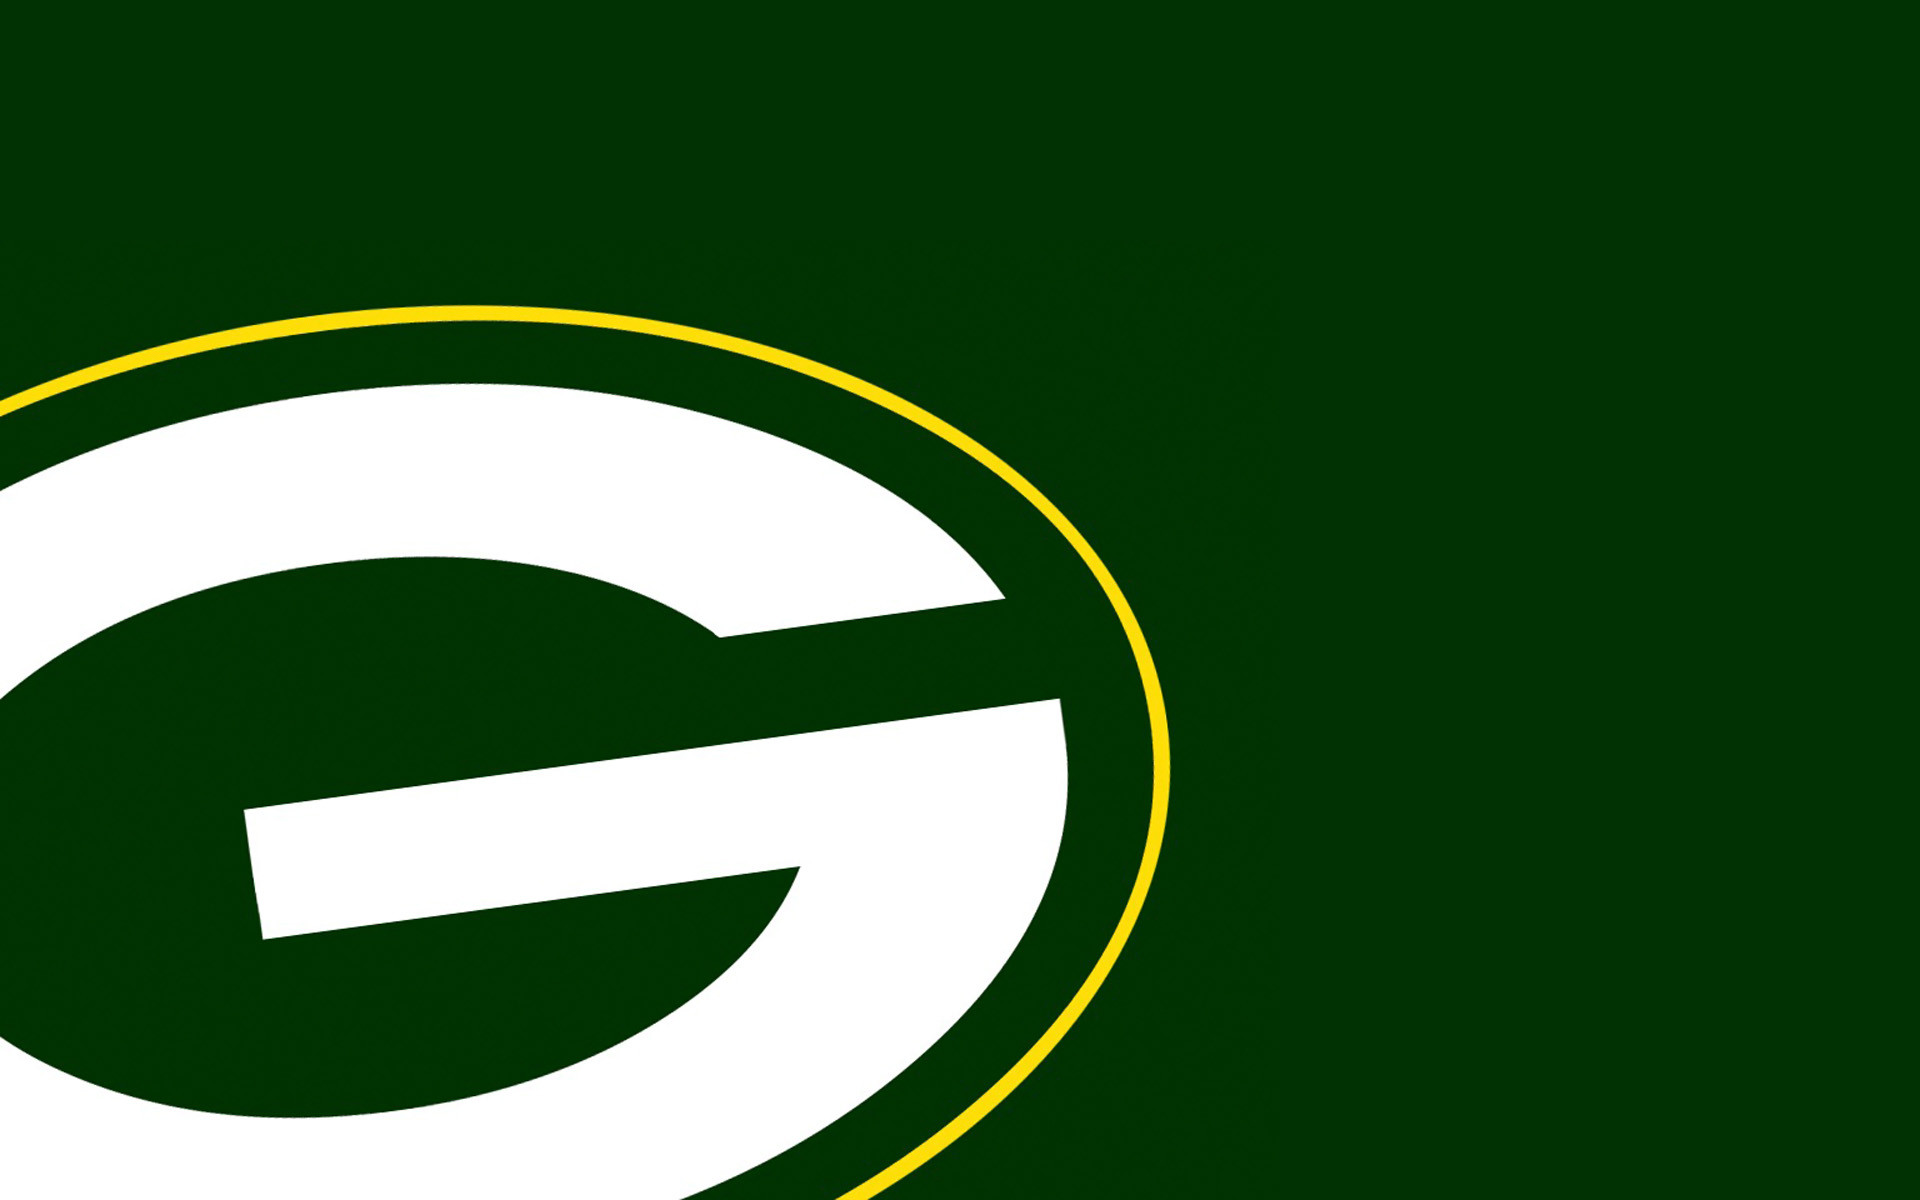 1080x1920 Green Bay Packers Iphone Wallpaper